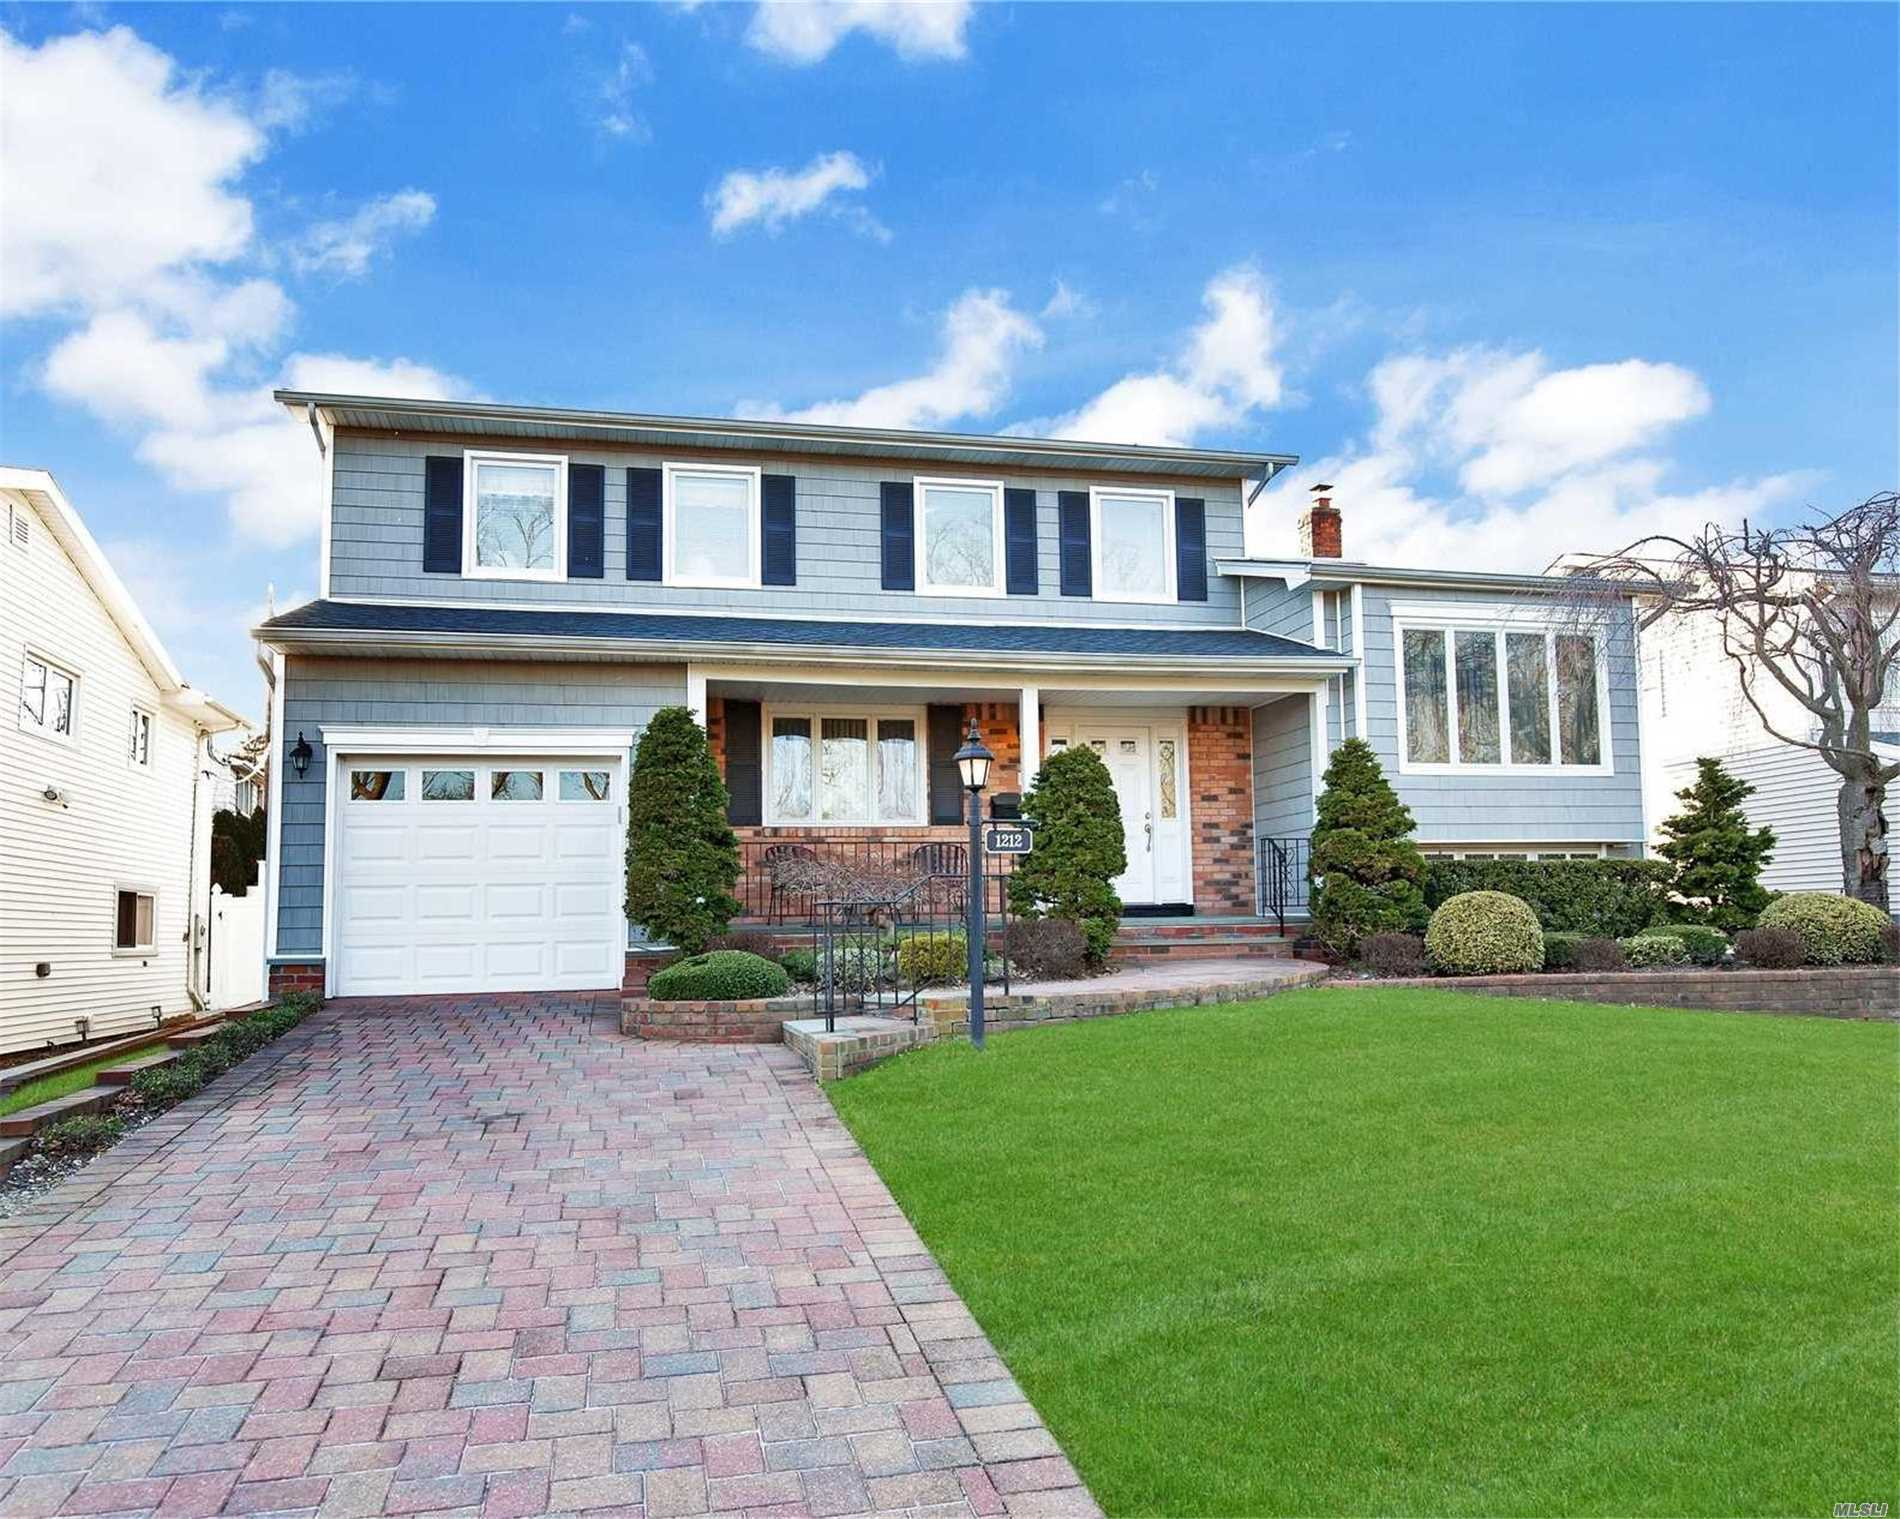 The One You've Been Waiting For. Spacious flowing open floor plan. Diamond++. 5 BR Colonial/Split. All BRs up. Largest House On The Street. Expanded To Perfection. Hdwd Floors Throughout. . Radiant Htd Stone Floors. EIK With Granite Counter Tops, Stainless High End Appliances, Cherry Wood Cabinets. Basement Features A Pool Table Room With Bar, Play Room, Library/Office, Storage. Mid Block Location. Meticulously Maintained.